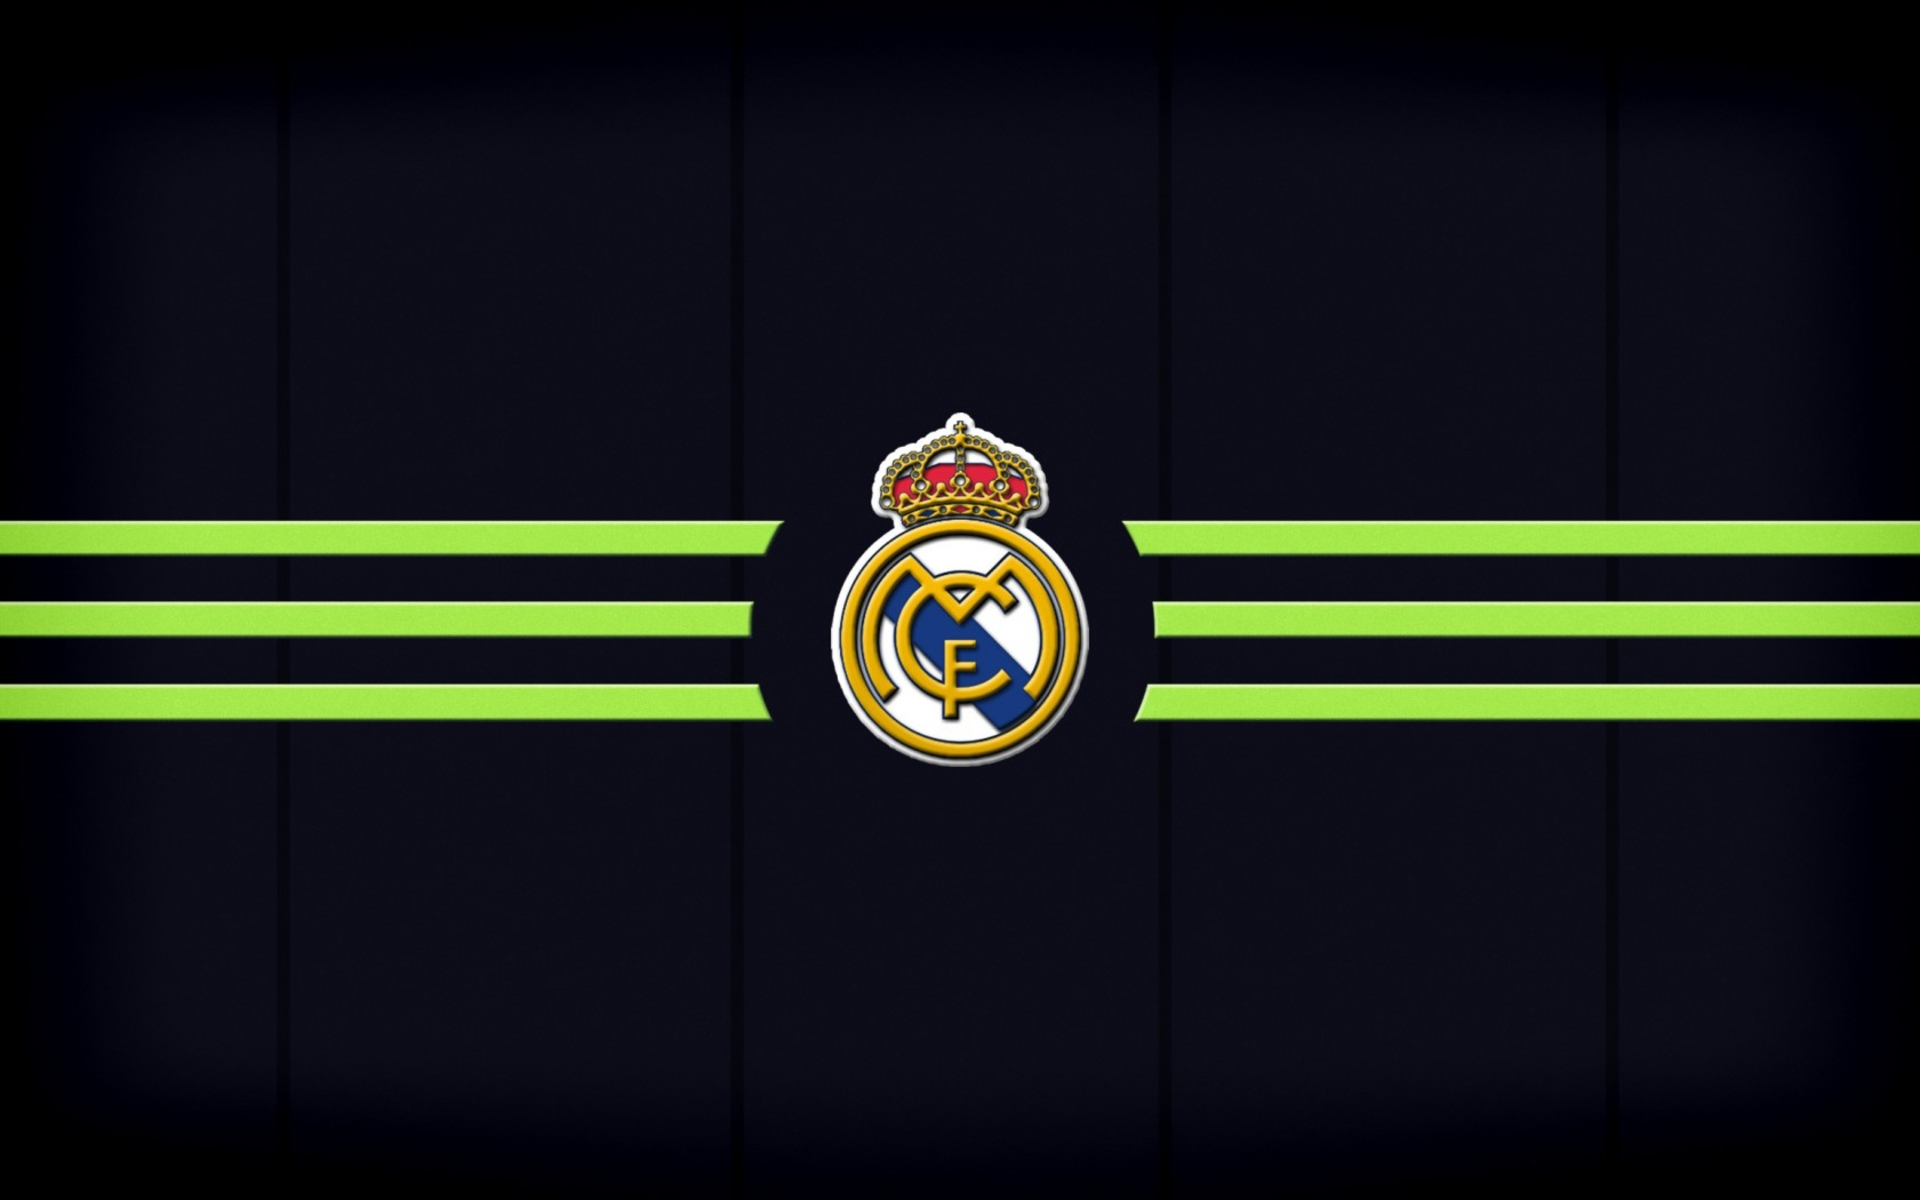 Real Madrid Logo 2016 Football Club